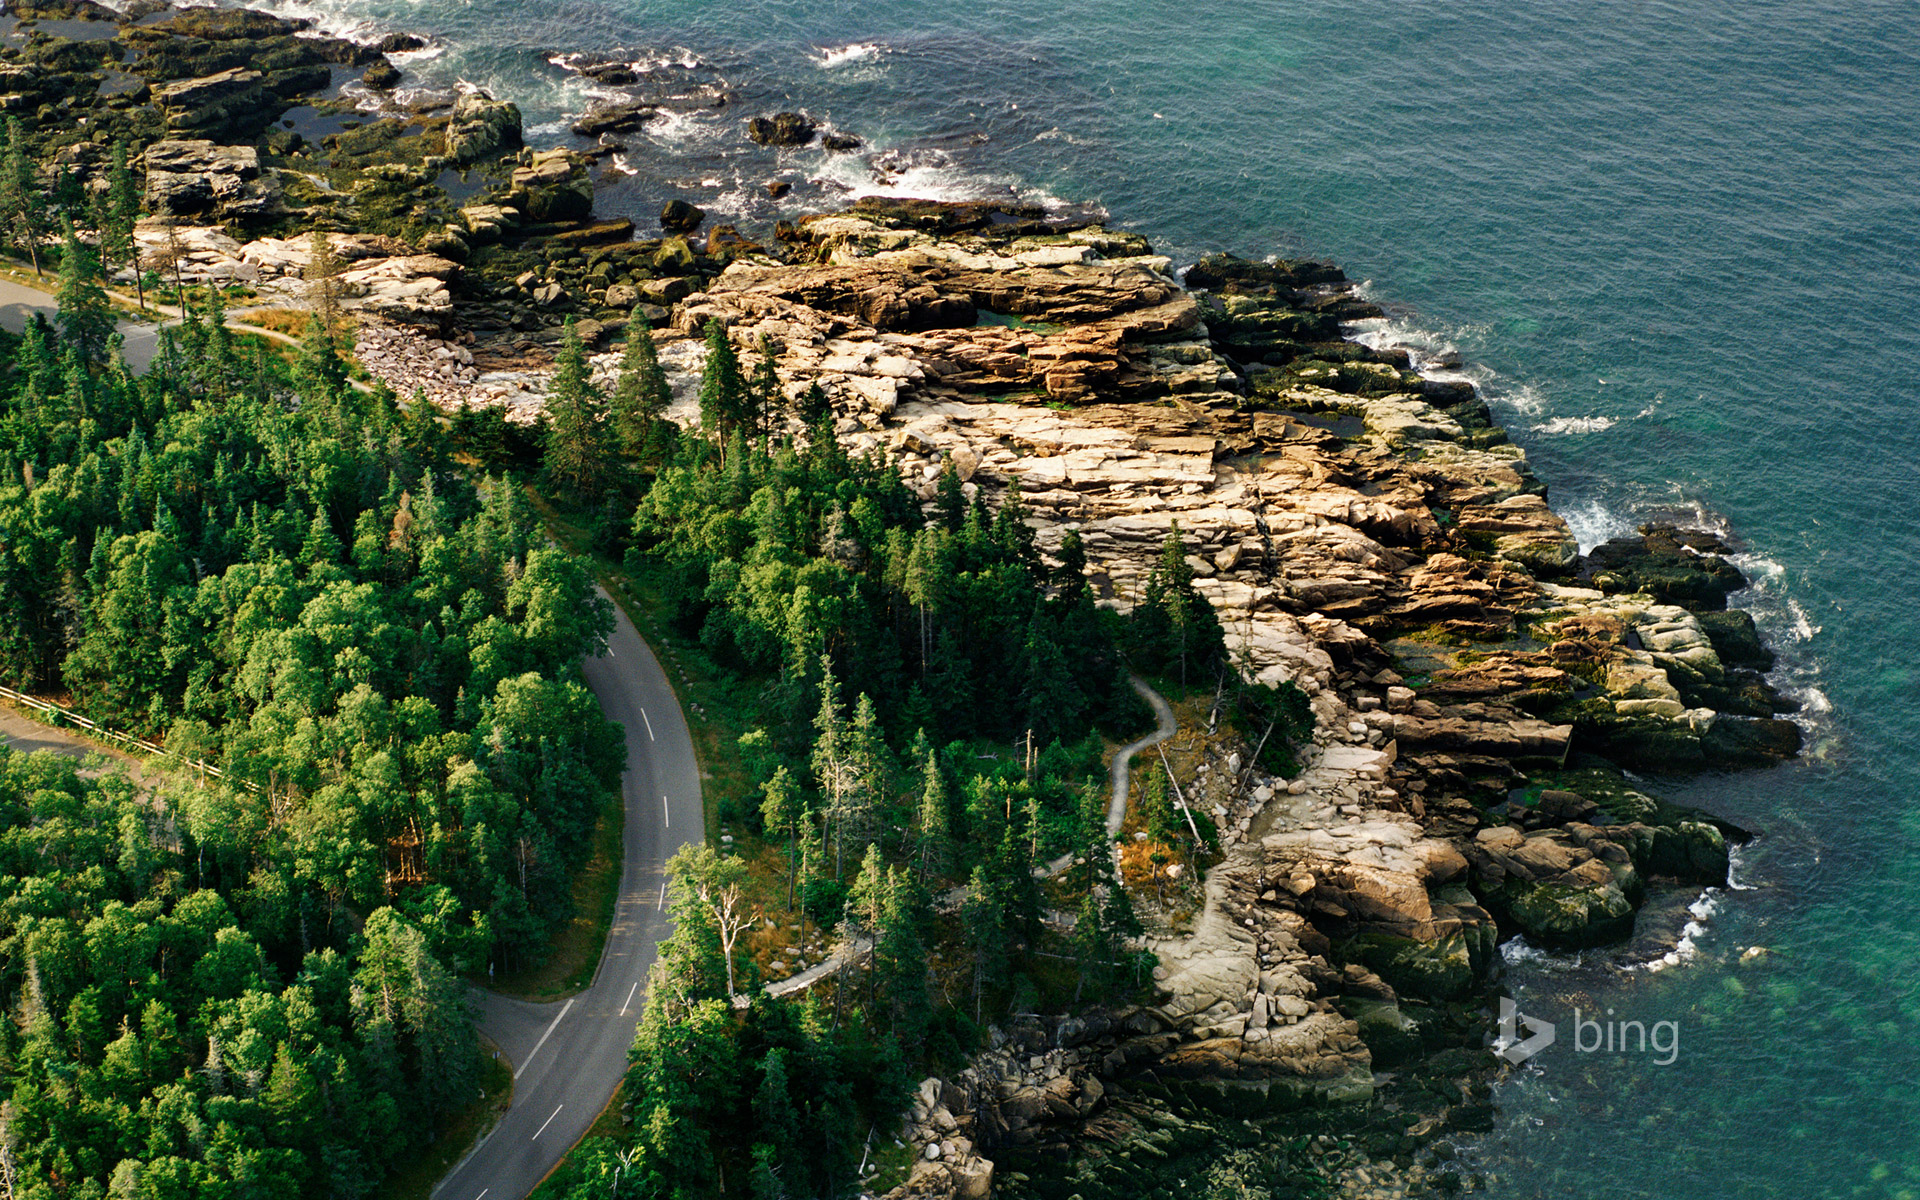 Coastline of Acadia National Park, Maine